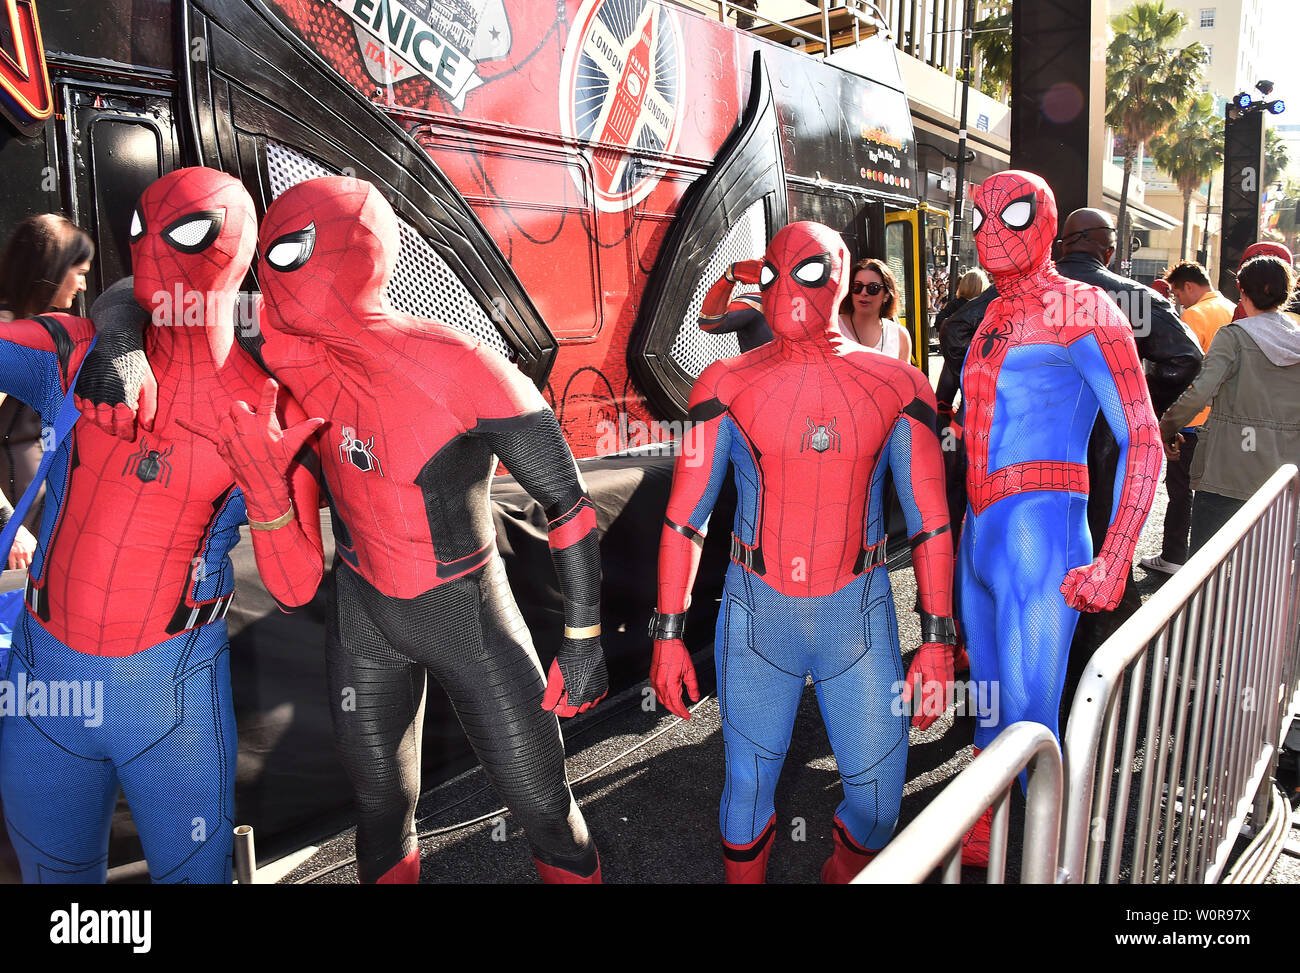 "HOLLYWOOD, CA - JUNE 26: Atmosphere at the premiere of Sony Pictures' ""Spider-Man Far From Home"" at TCL Chinese Theatre on June 26, 2019 in Hollywood, California. Stock Photo"